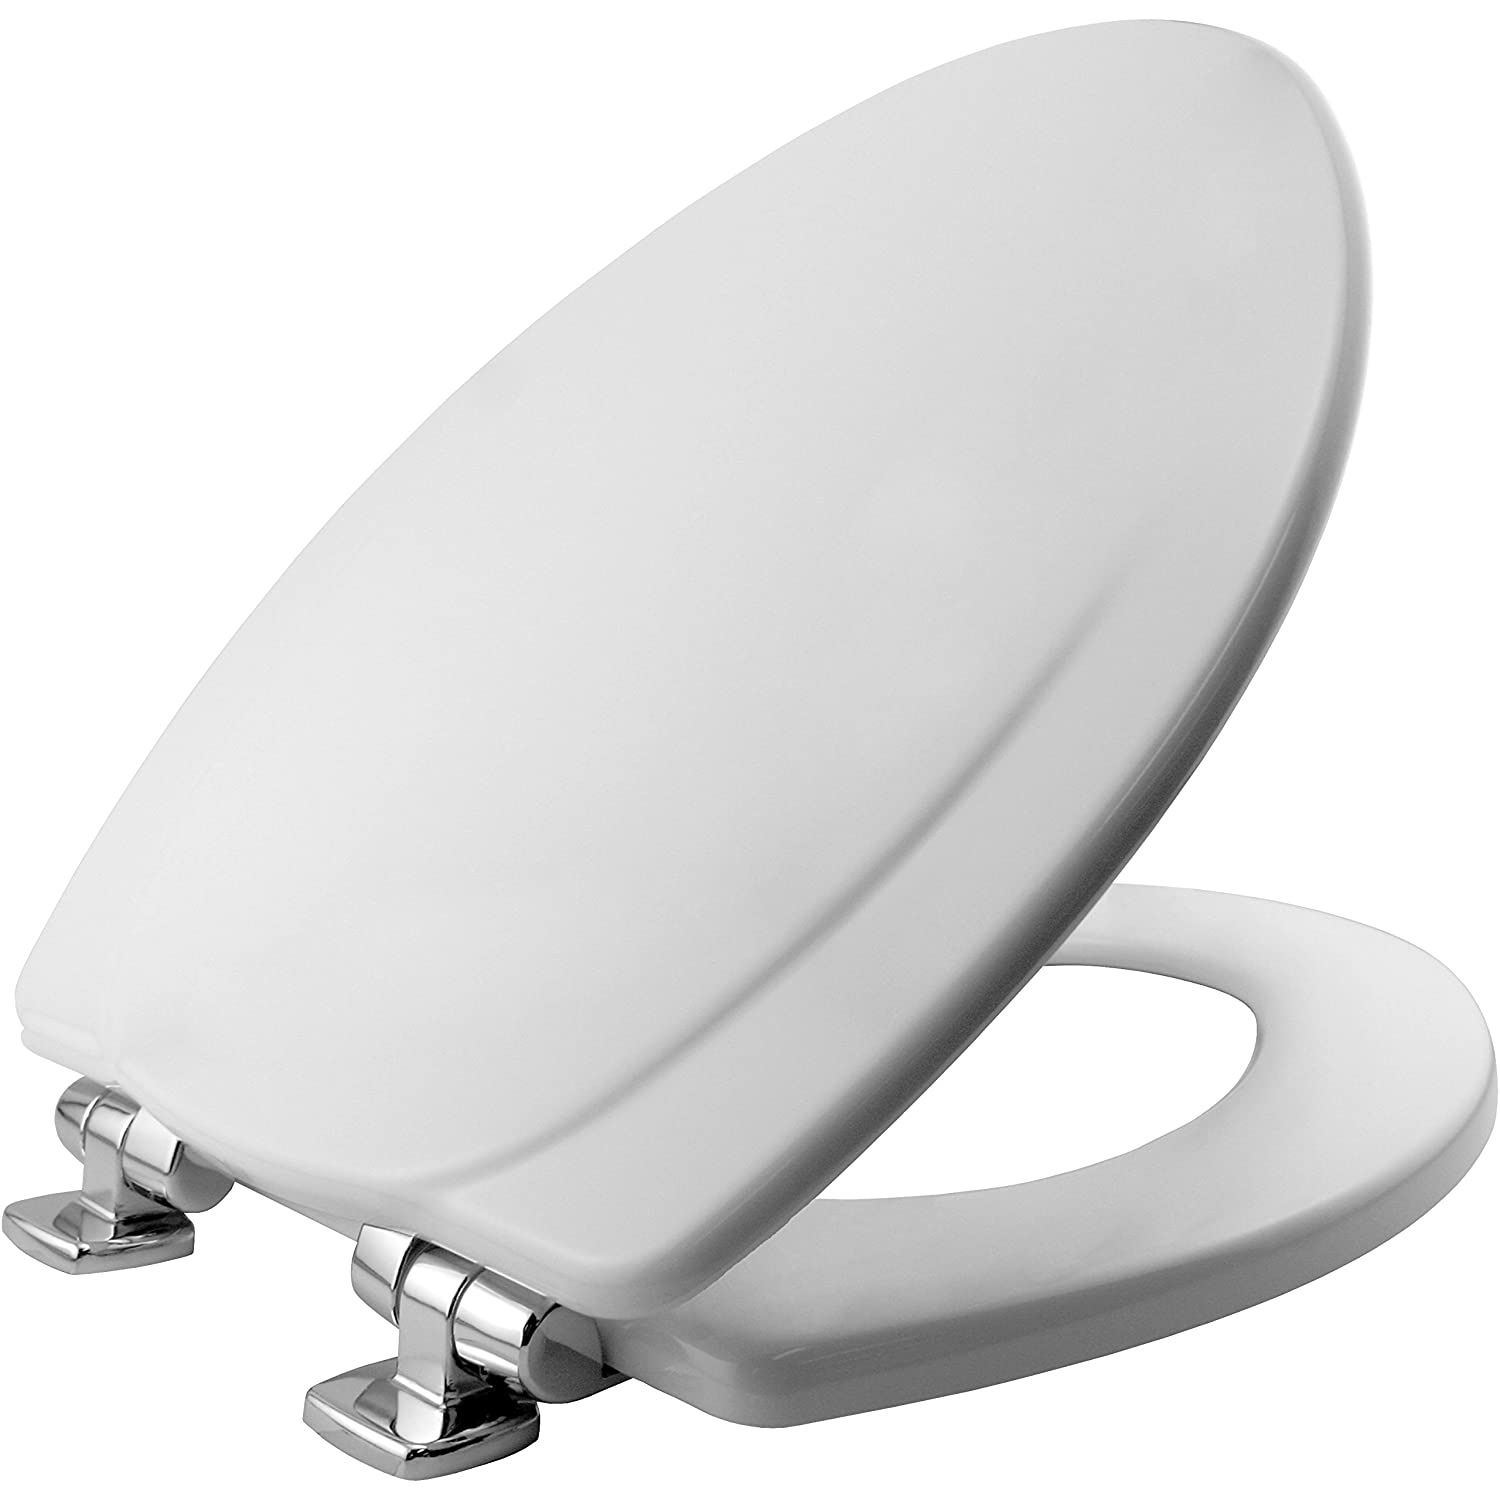 Mayfair designer series molded wood toilet seat with sta tite seat mayfair designer series molded wood toilet seat with sta tite seat fastening system and whisper close chrome metal hinges elongated white 130chslb 000 nvjuhfo Image collections